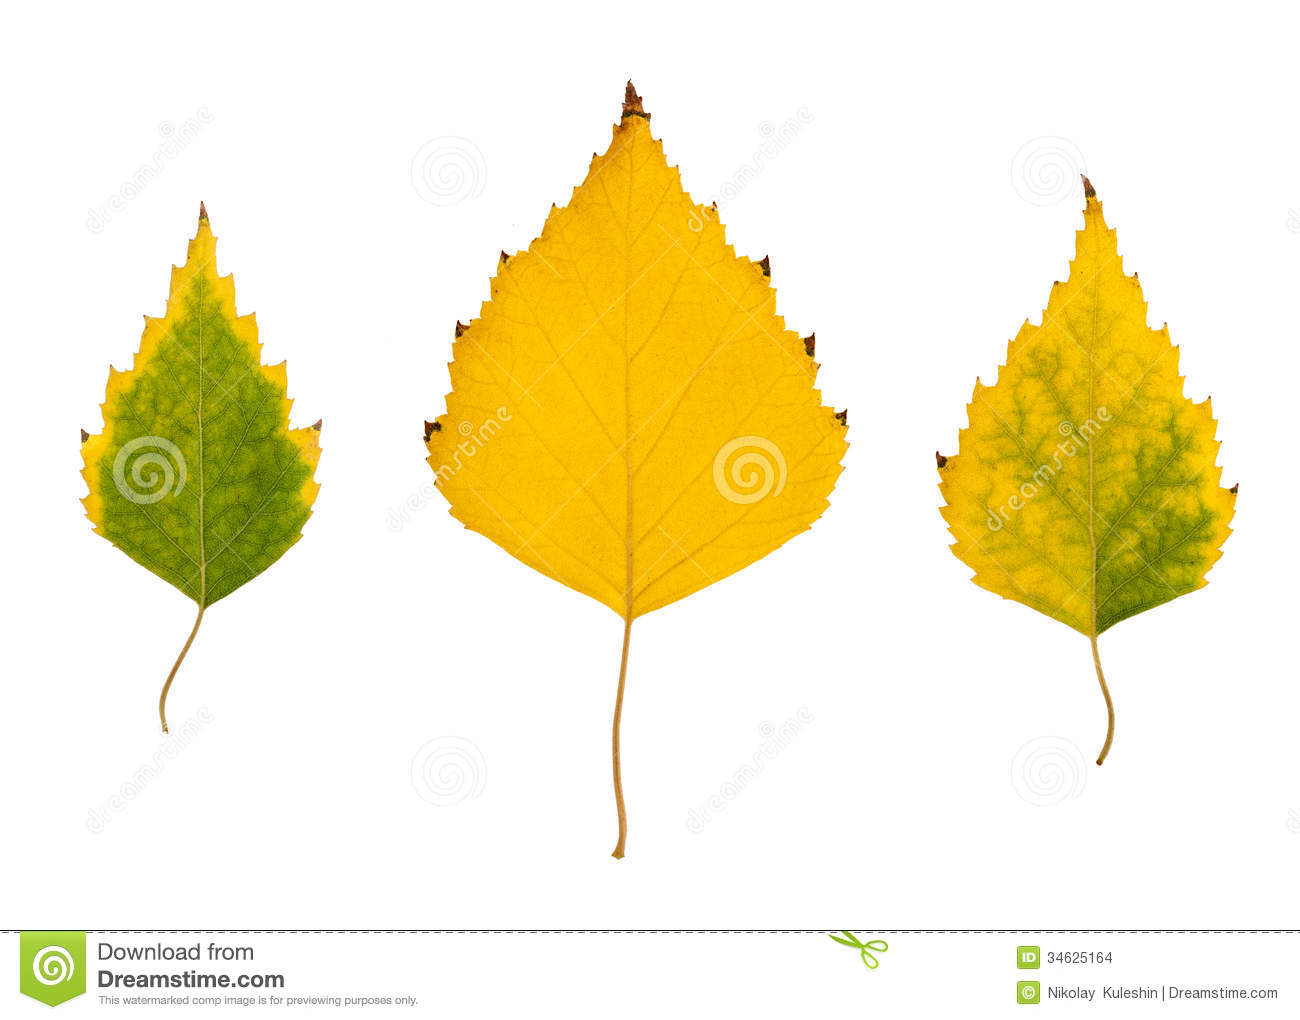 Yellow poplar leaves isolated on a white background.